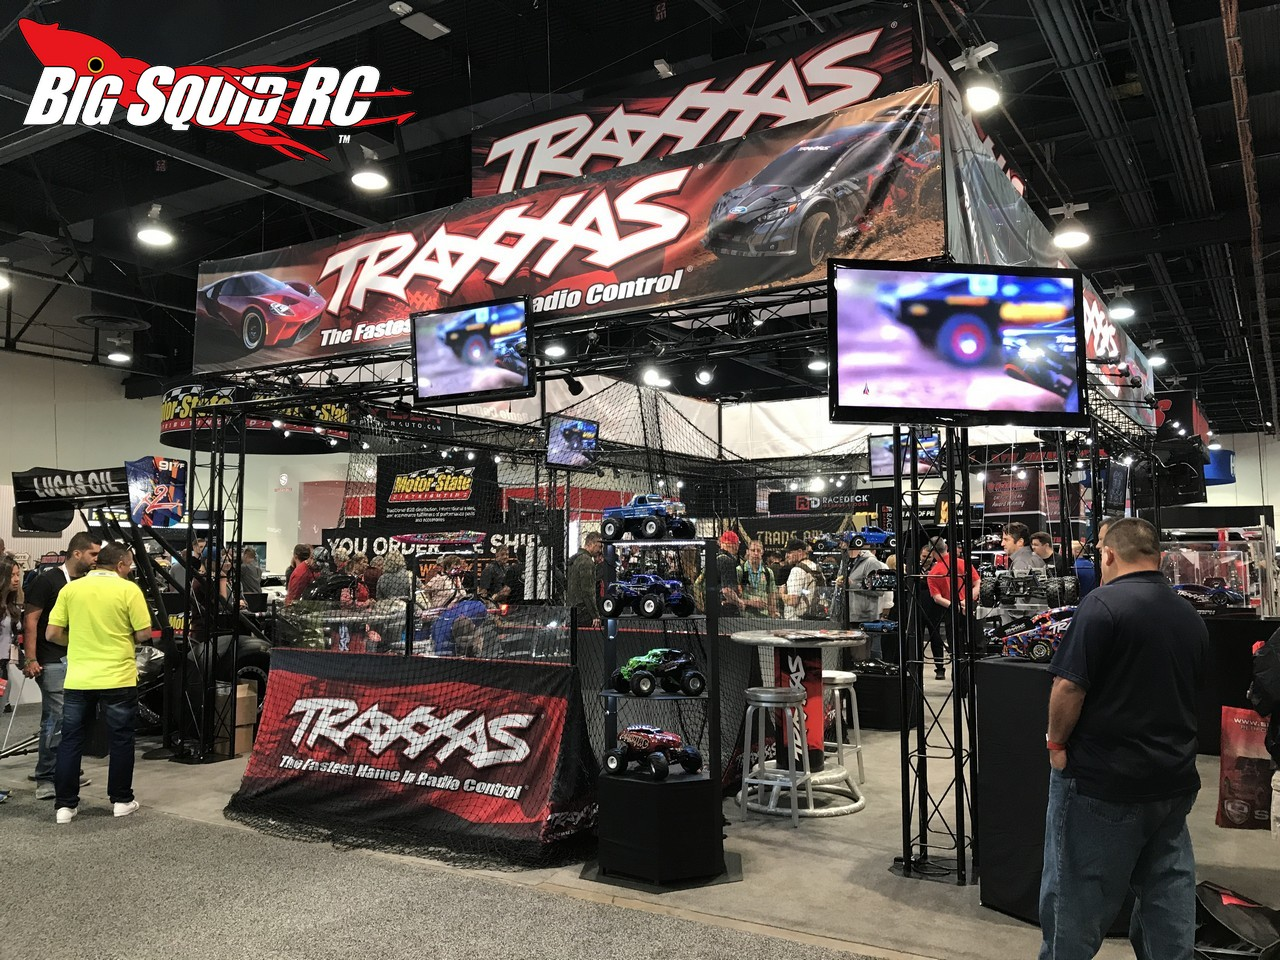 2017 sema show coverage big squid rc rc car and truck news reviews videos and more. Black Bedroom Furniture Sets. Home Design Ideas